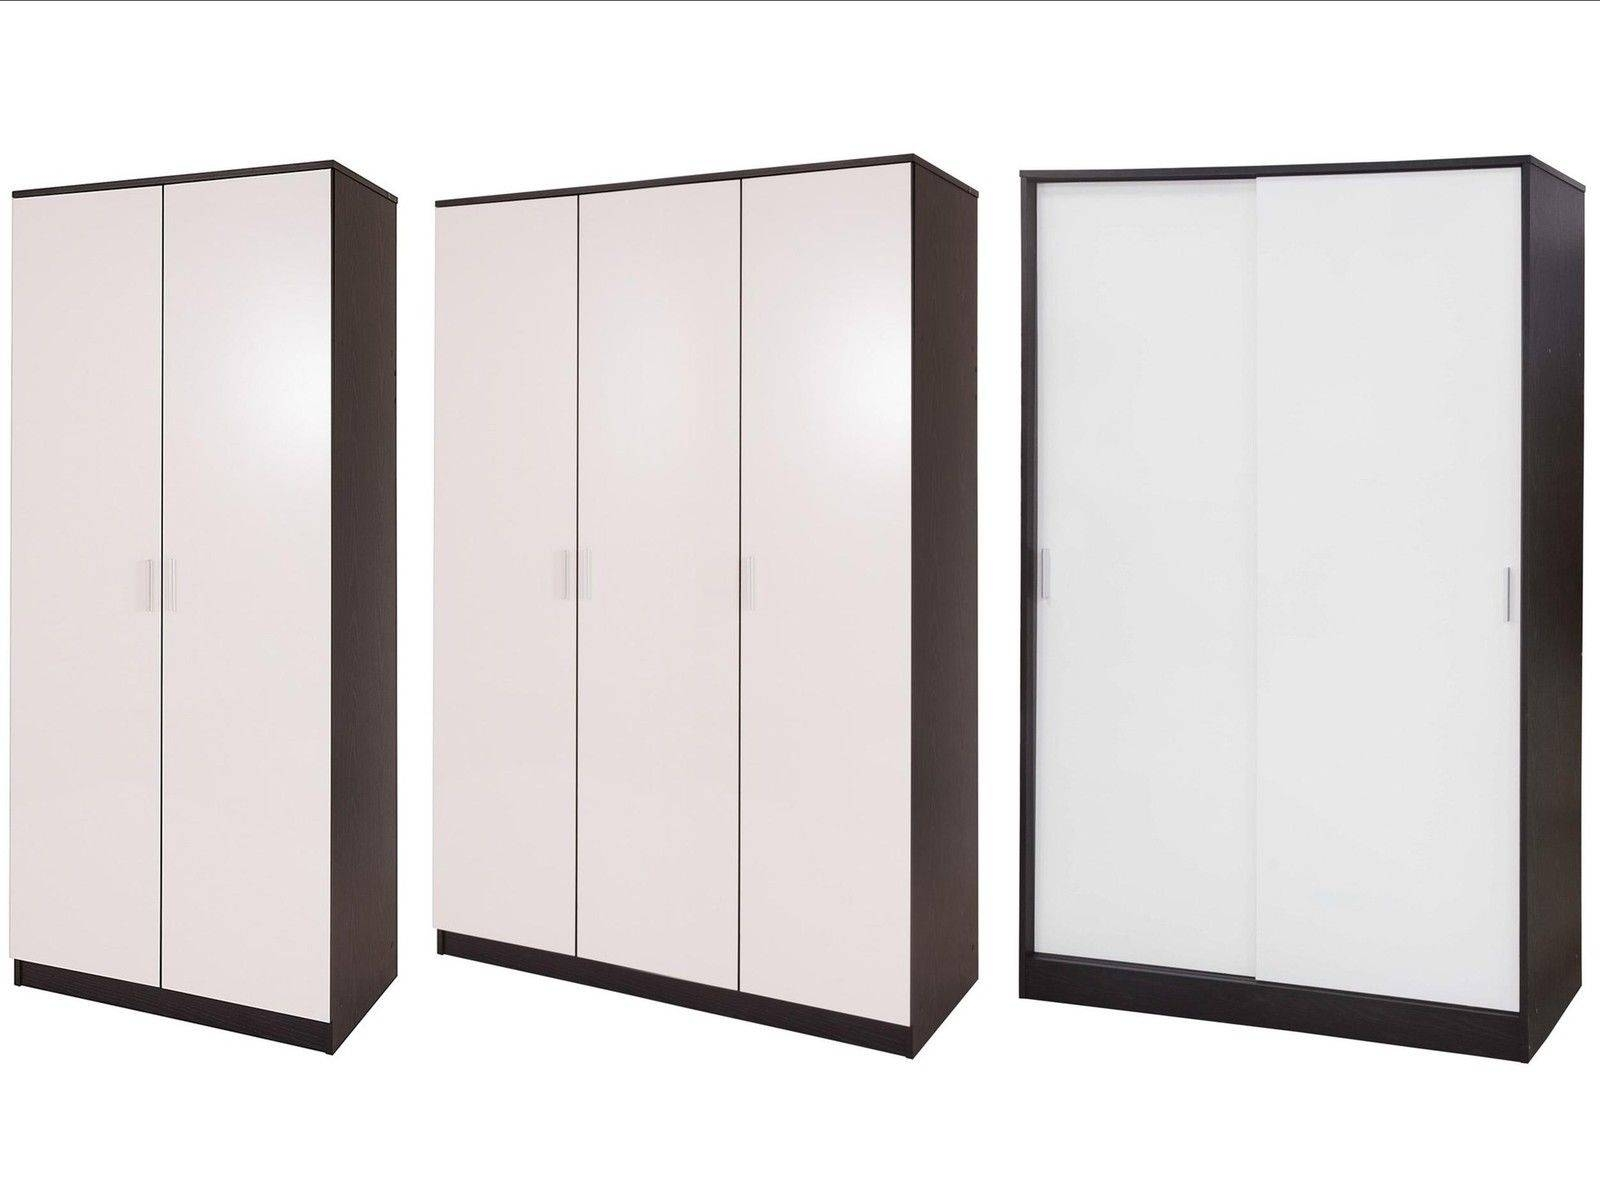 New Caspian High Gloss Wardrobes Sliding Or Standard 2 Or 3 Door in 3 Door Black Wardrobes (Image 12 of 15)